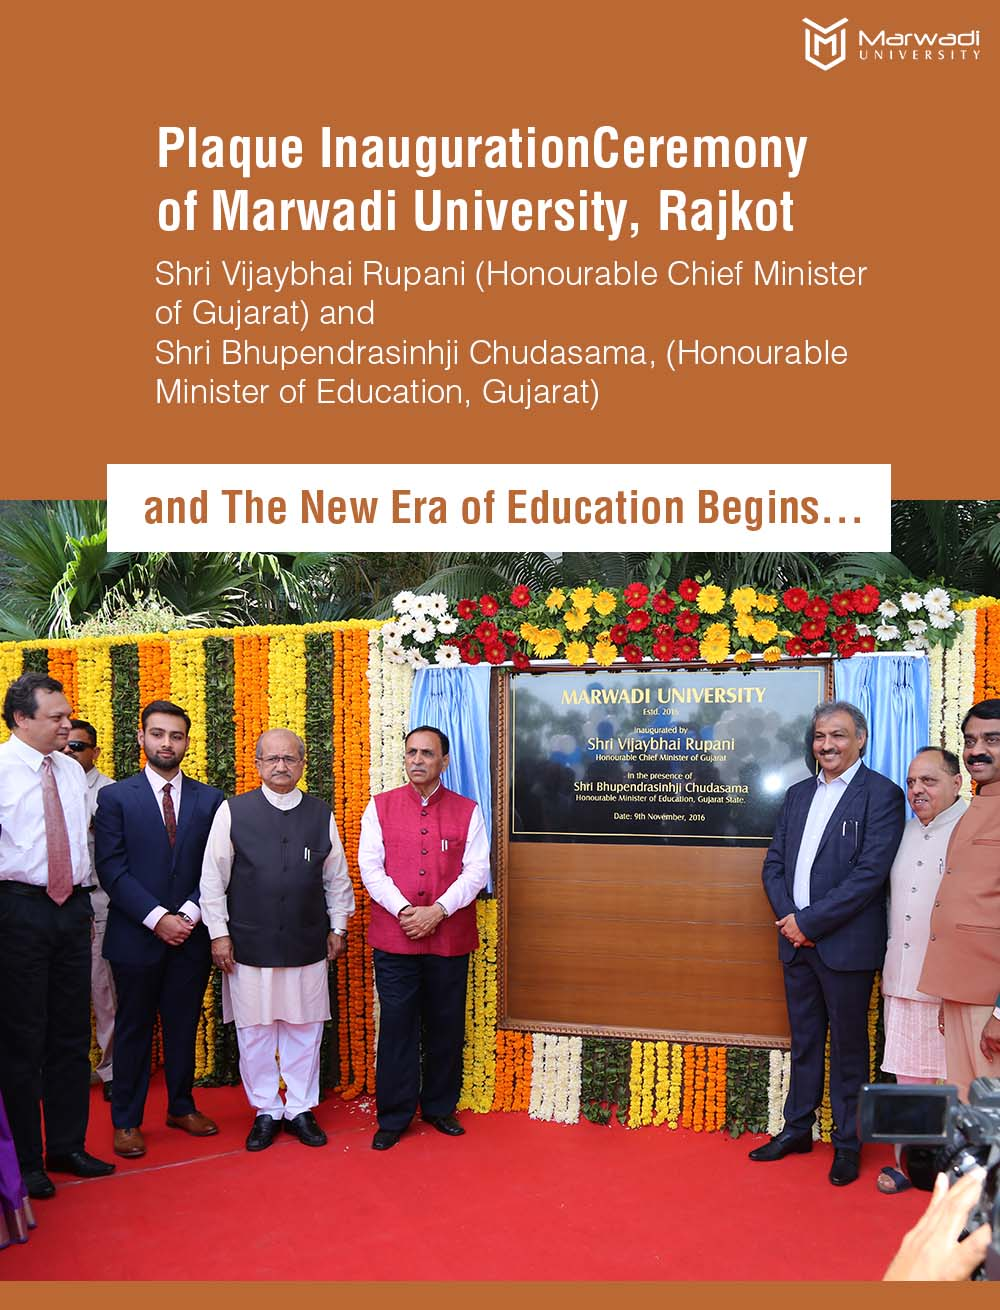 Plaque Inauguration Ceremony of Marwadi University Rajkot